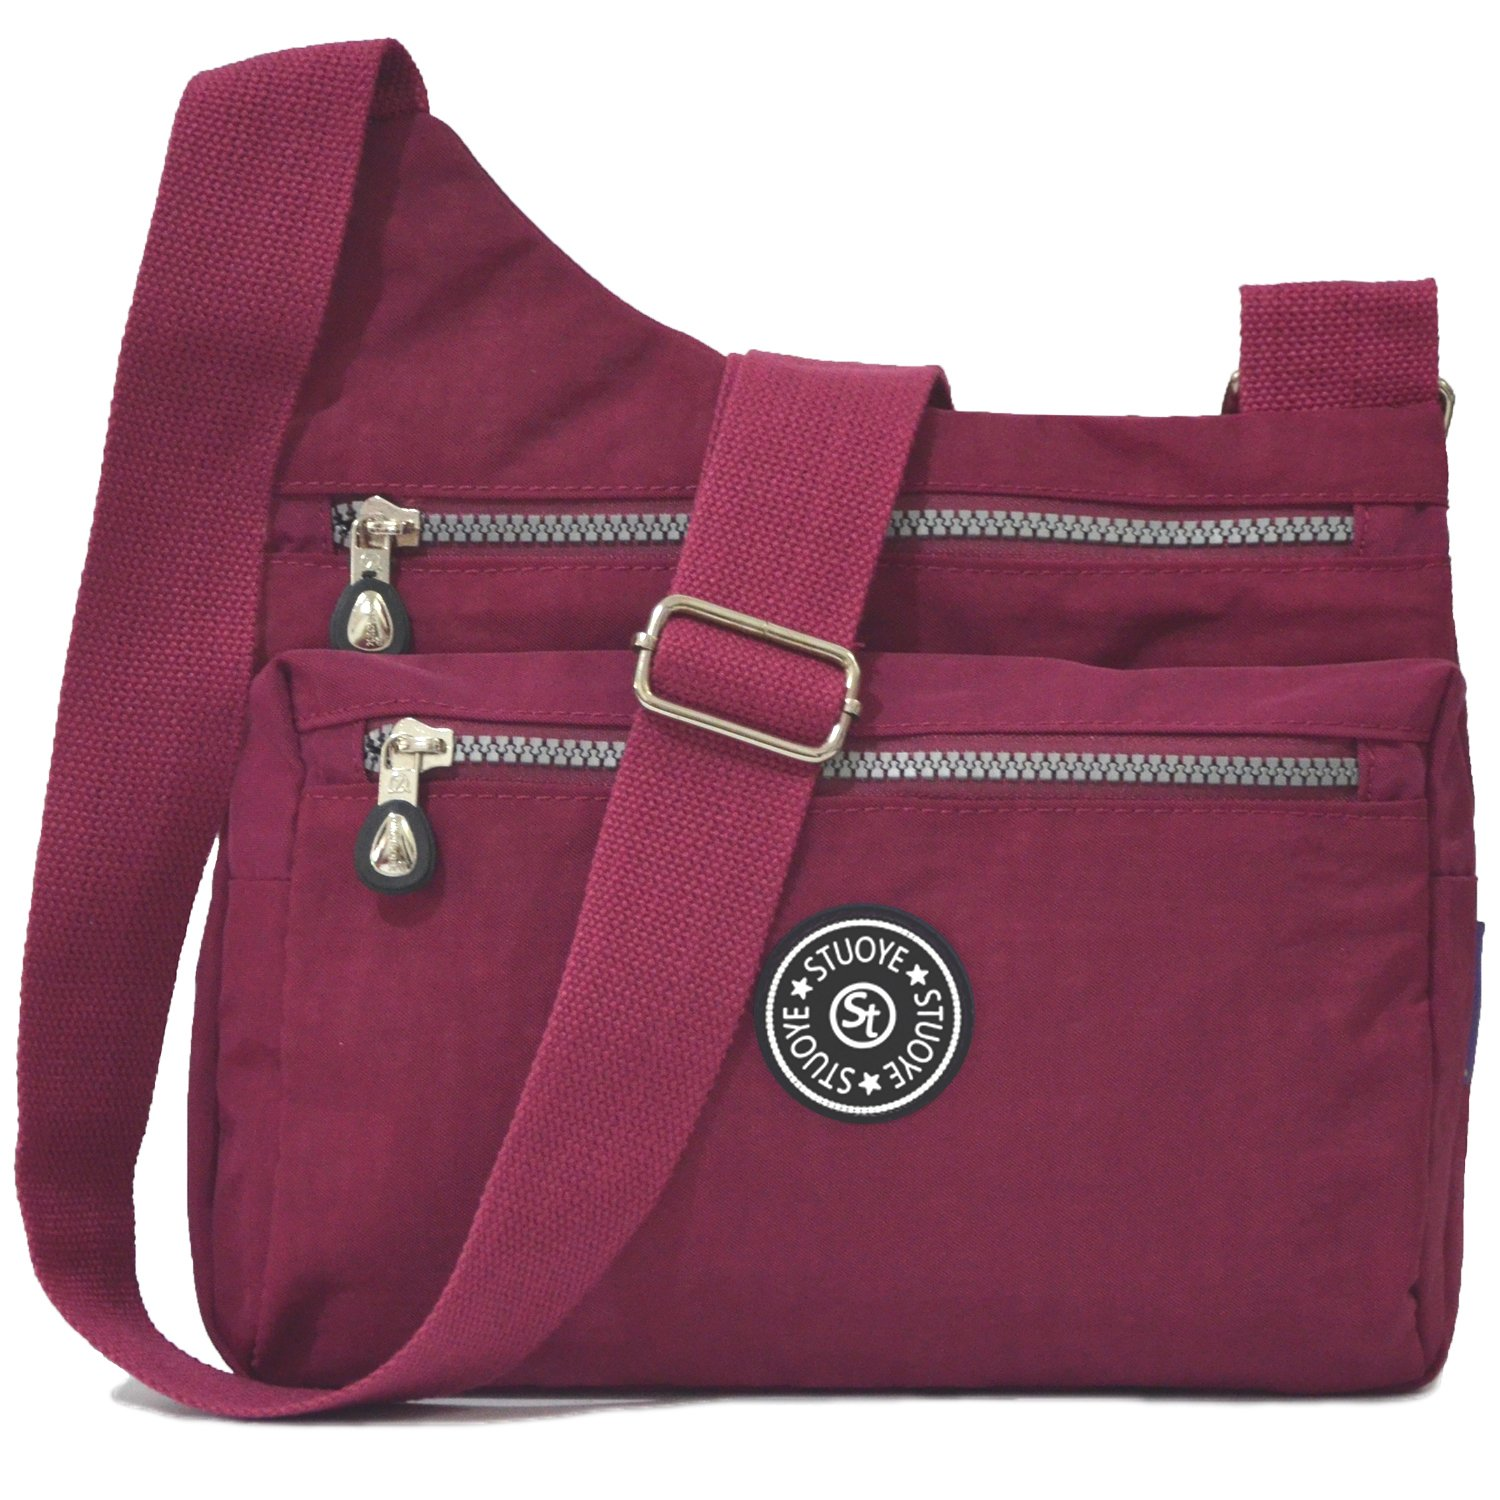 STUOYE Nylon Multi-Pocket Crossbody Purse Bags for Women Travel Shoulder Bag (Z187 Wine Red) by STUOYE